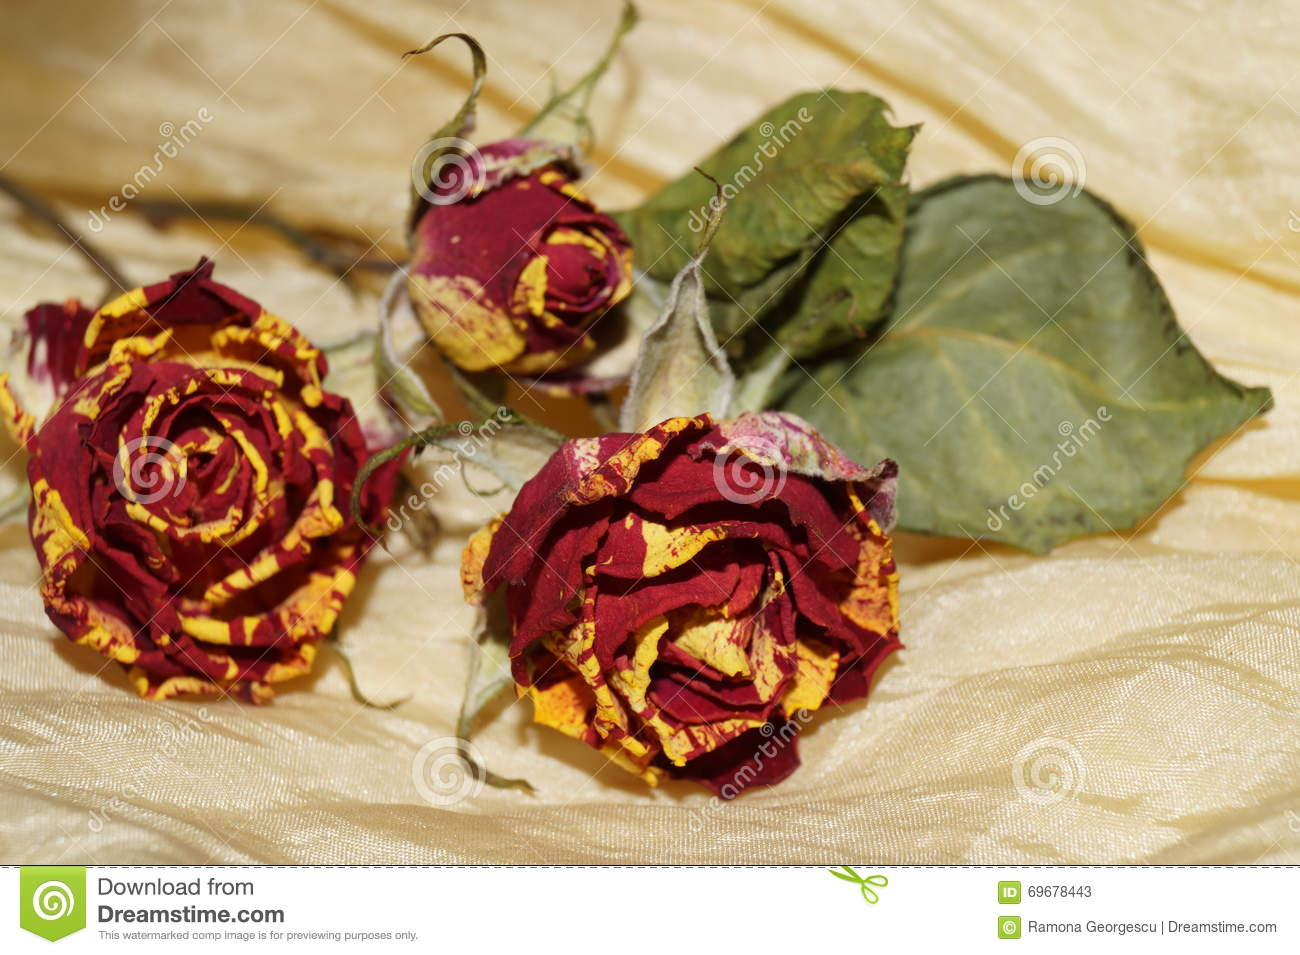 Wither roses on yellow silk stock photo image 69678443 for Natural rose colors